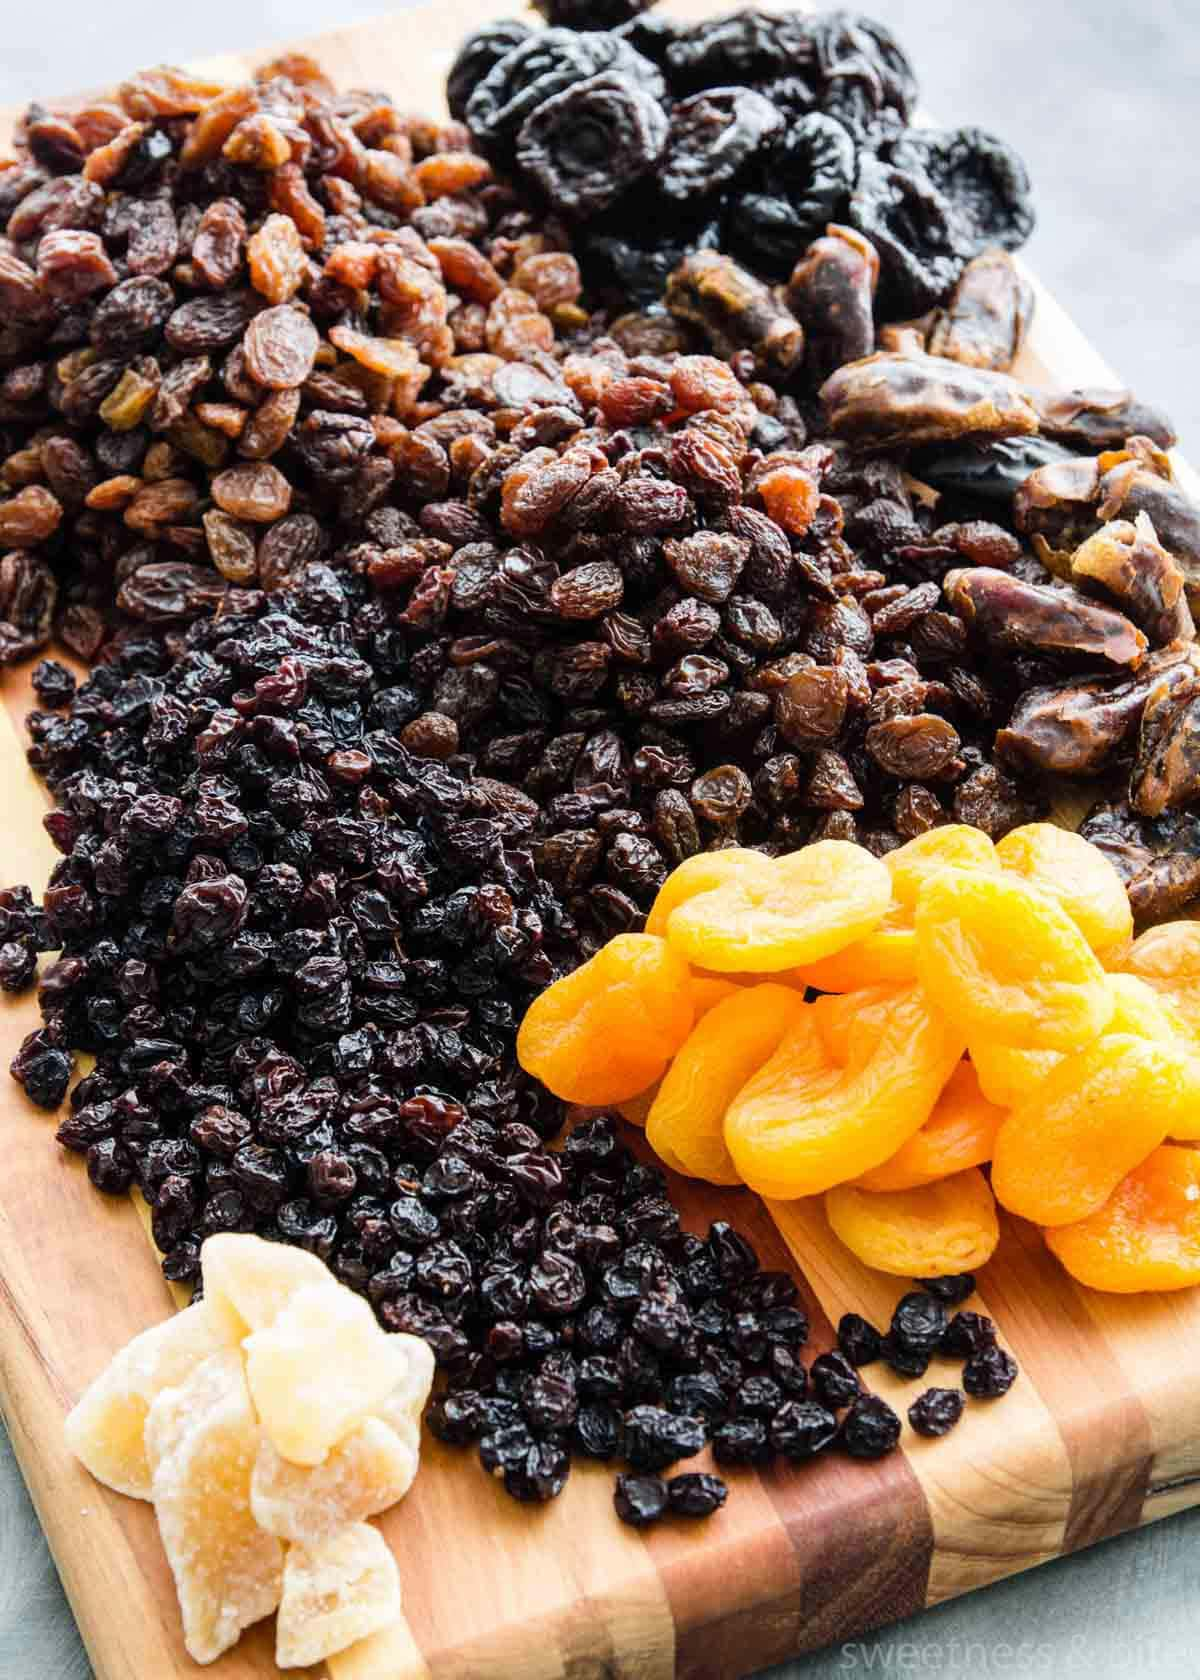 Dried fruits - sultanas, raisins, dates, prunes, currants, apricots and glace ginger - on a wooden board.